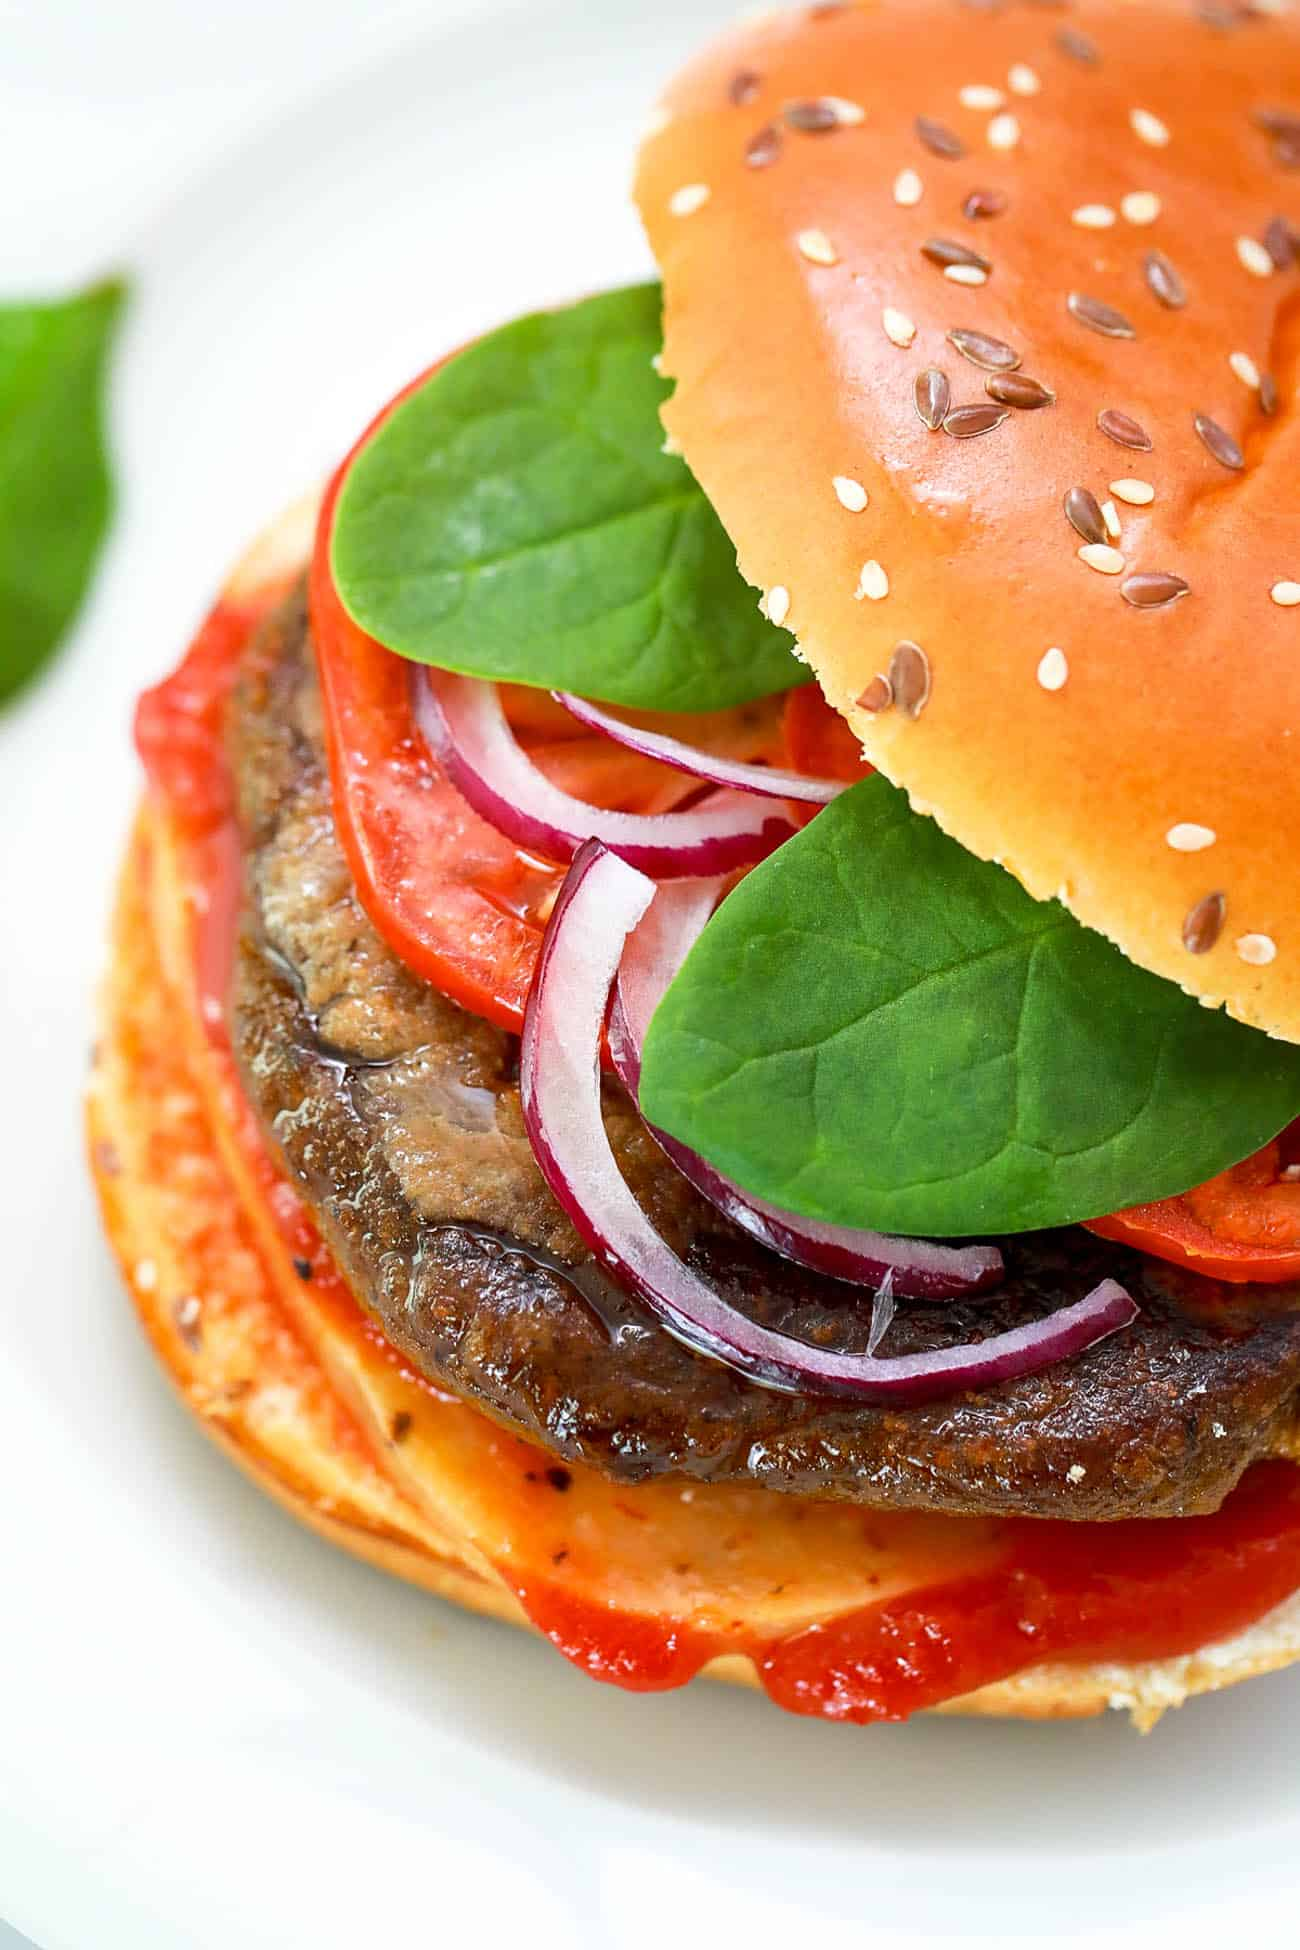 pumpkin burgers on a white plate - black bean pumpkin burgers topped with spinach, tomato, cheese, onions, ketchup